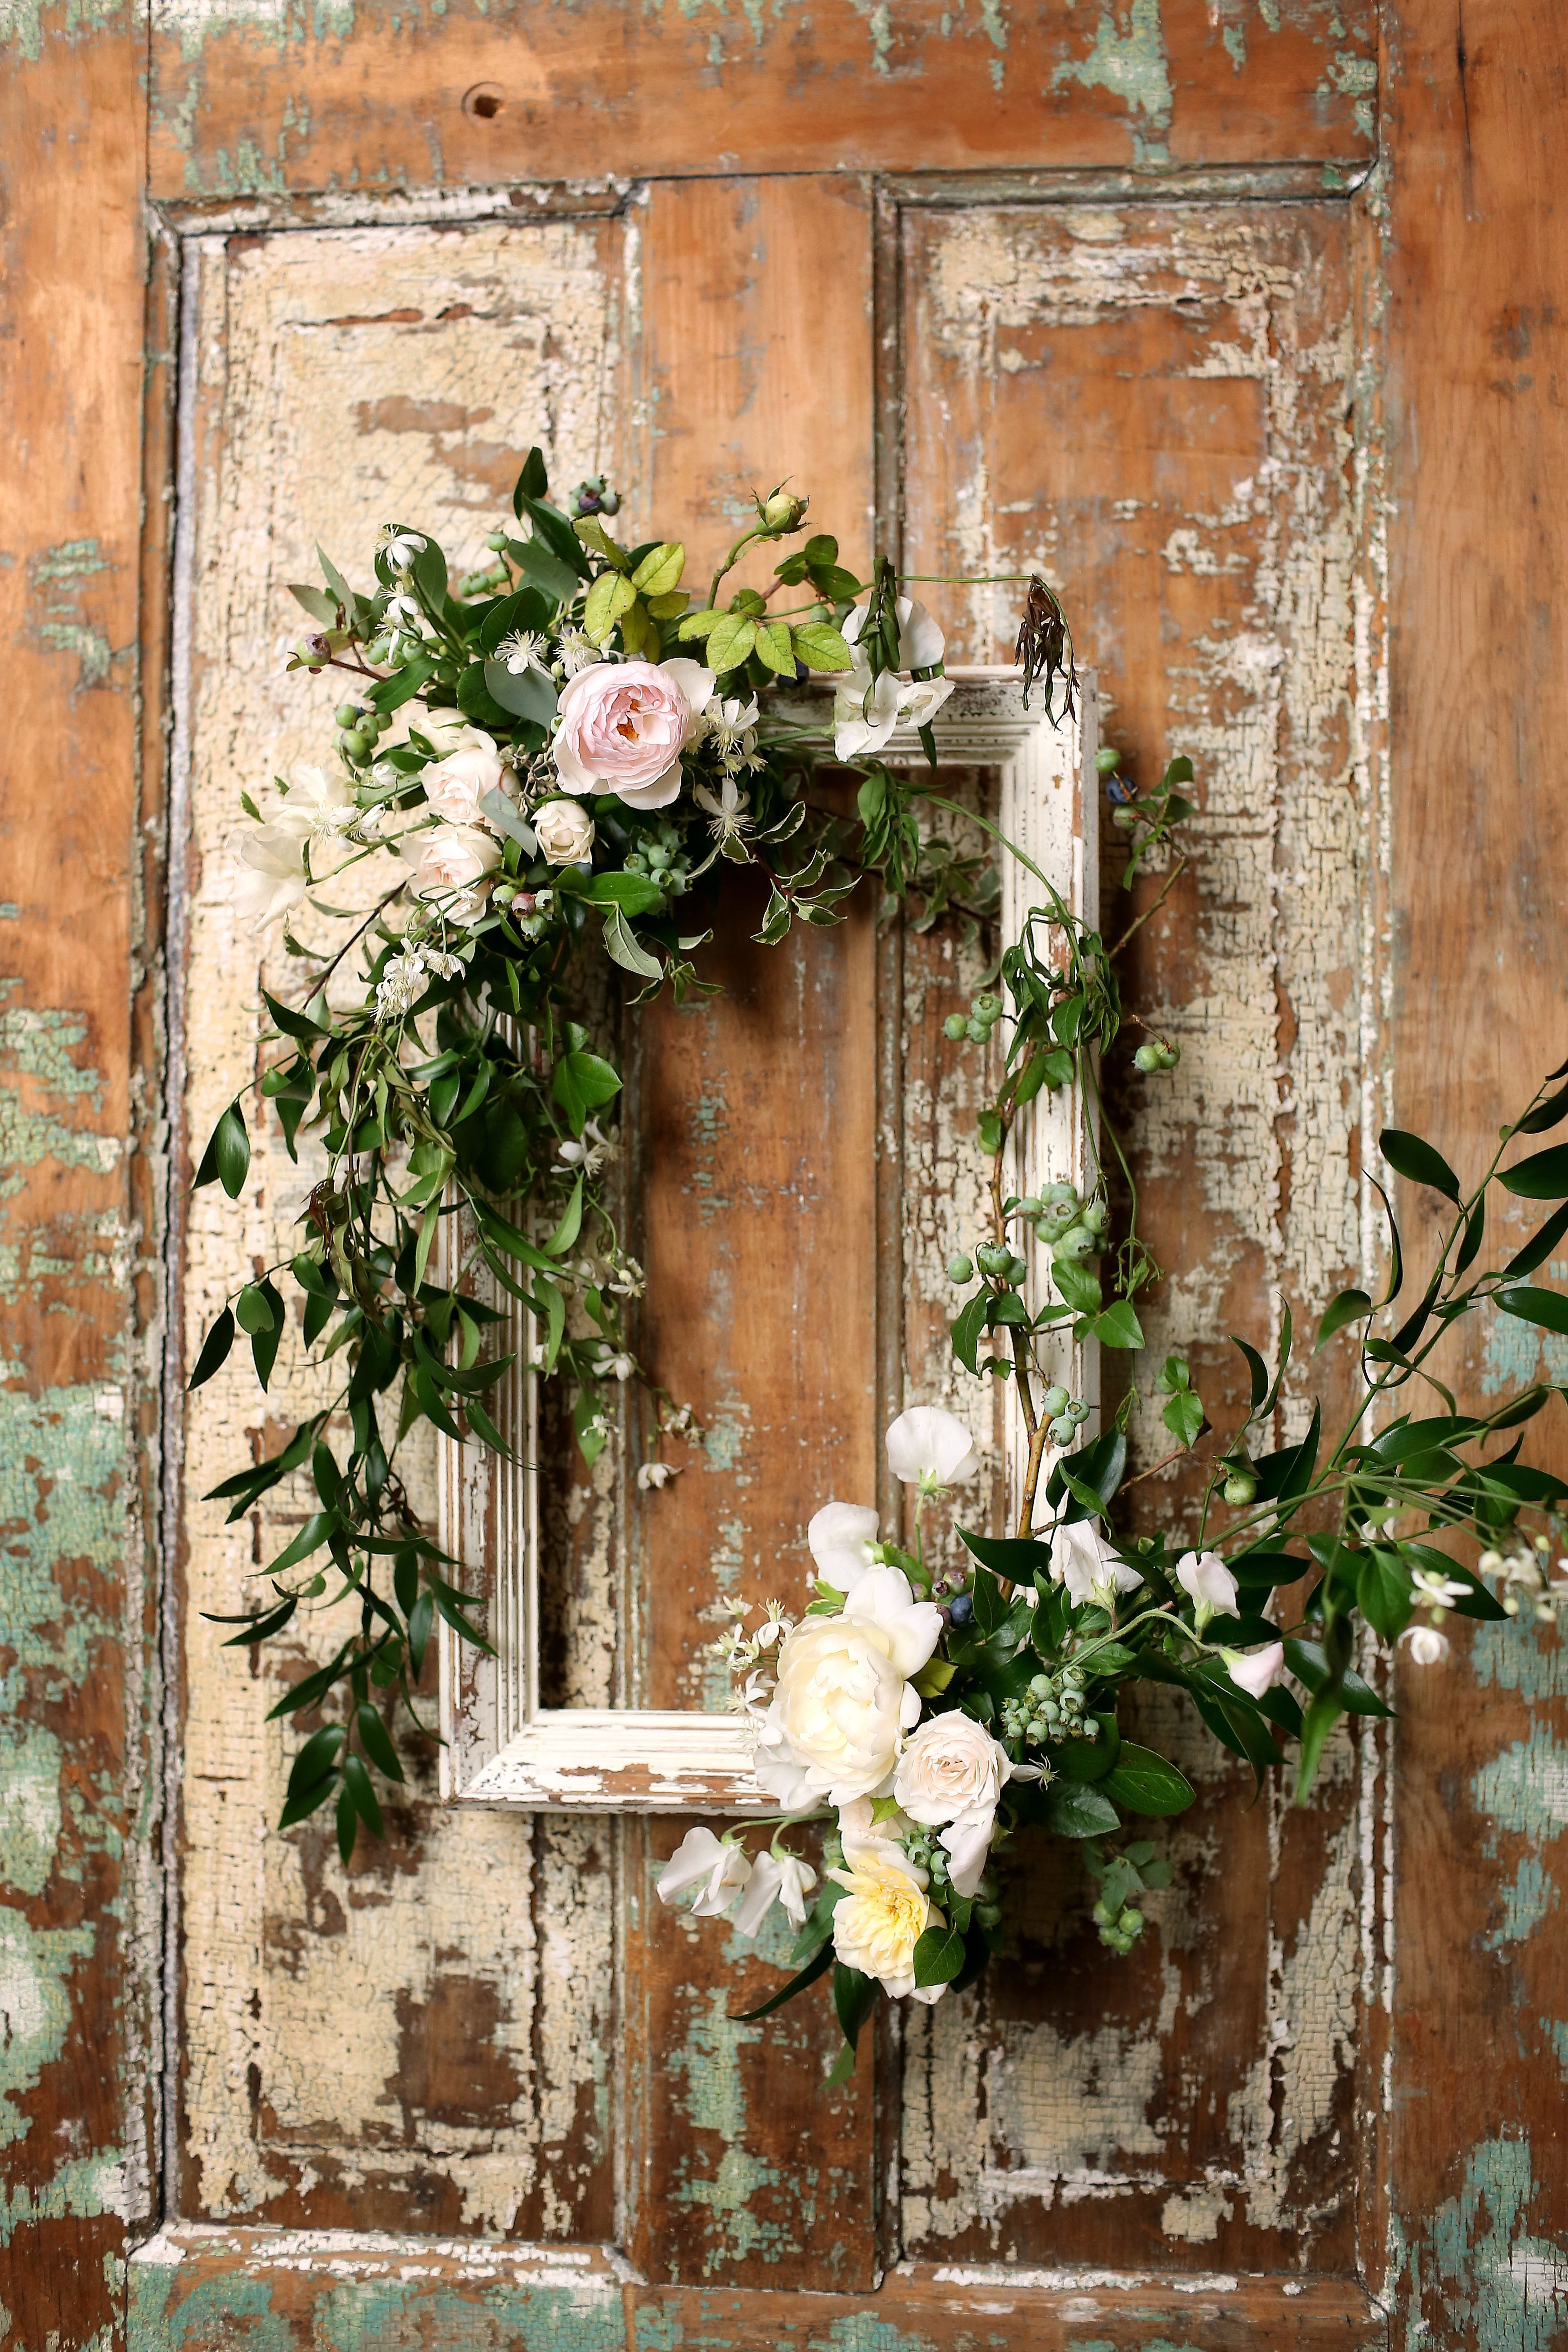 Best And Newest Floral Wreath Wood Framed Wall Decor For Wooden Frame With Vines And Pink Roses (Gallery 11 of 20)